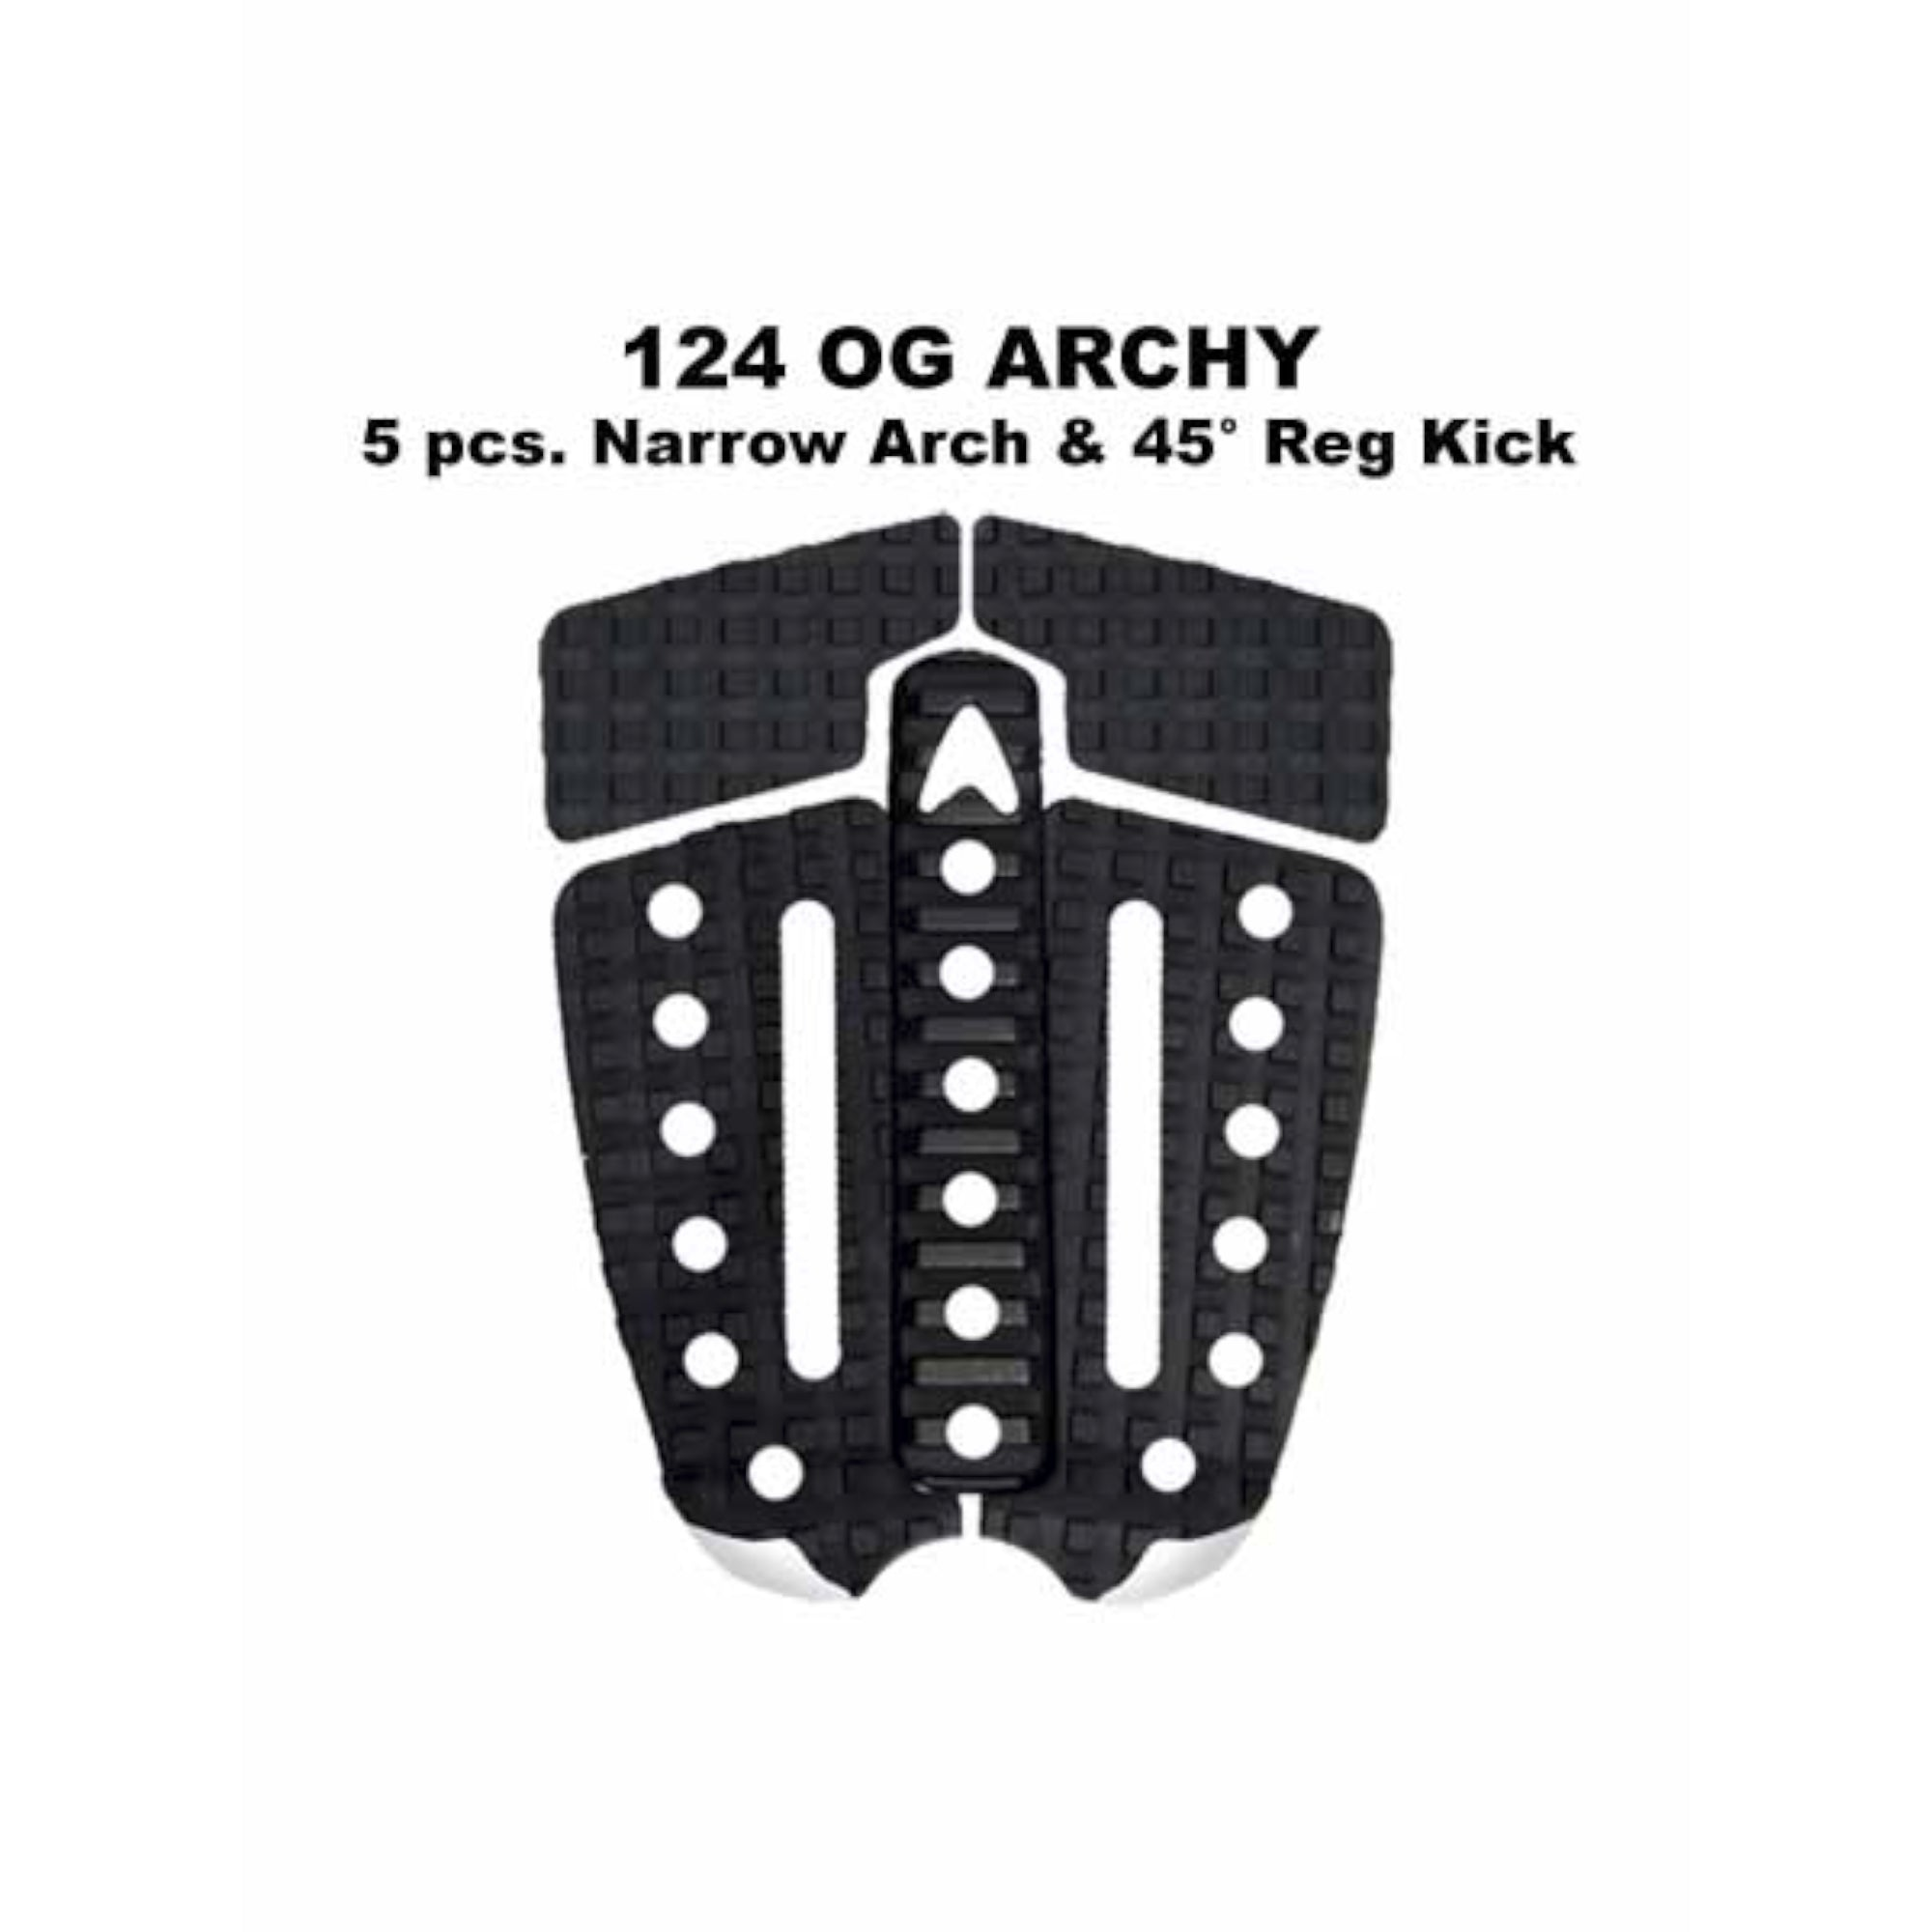 Astro Deck 124 OG Archy 5-Piece Narrow Arch Traction Pad